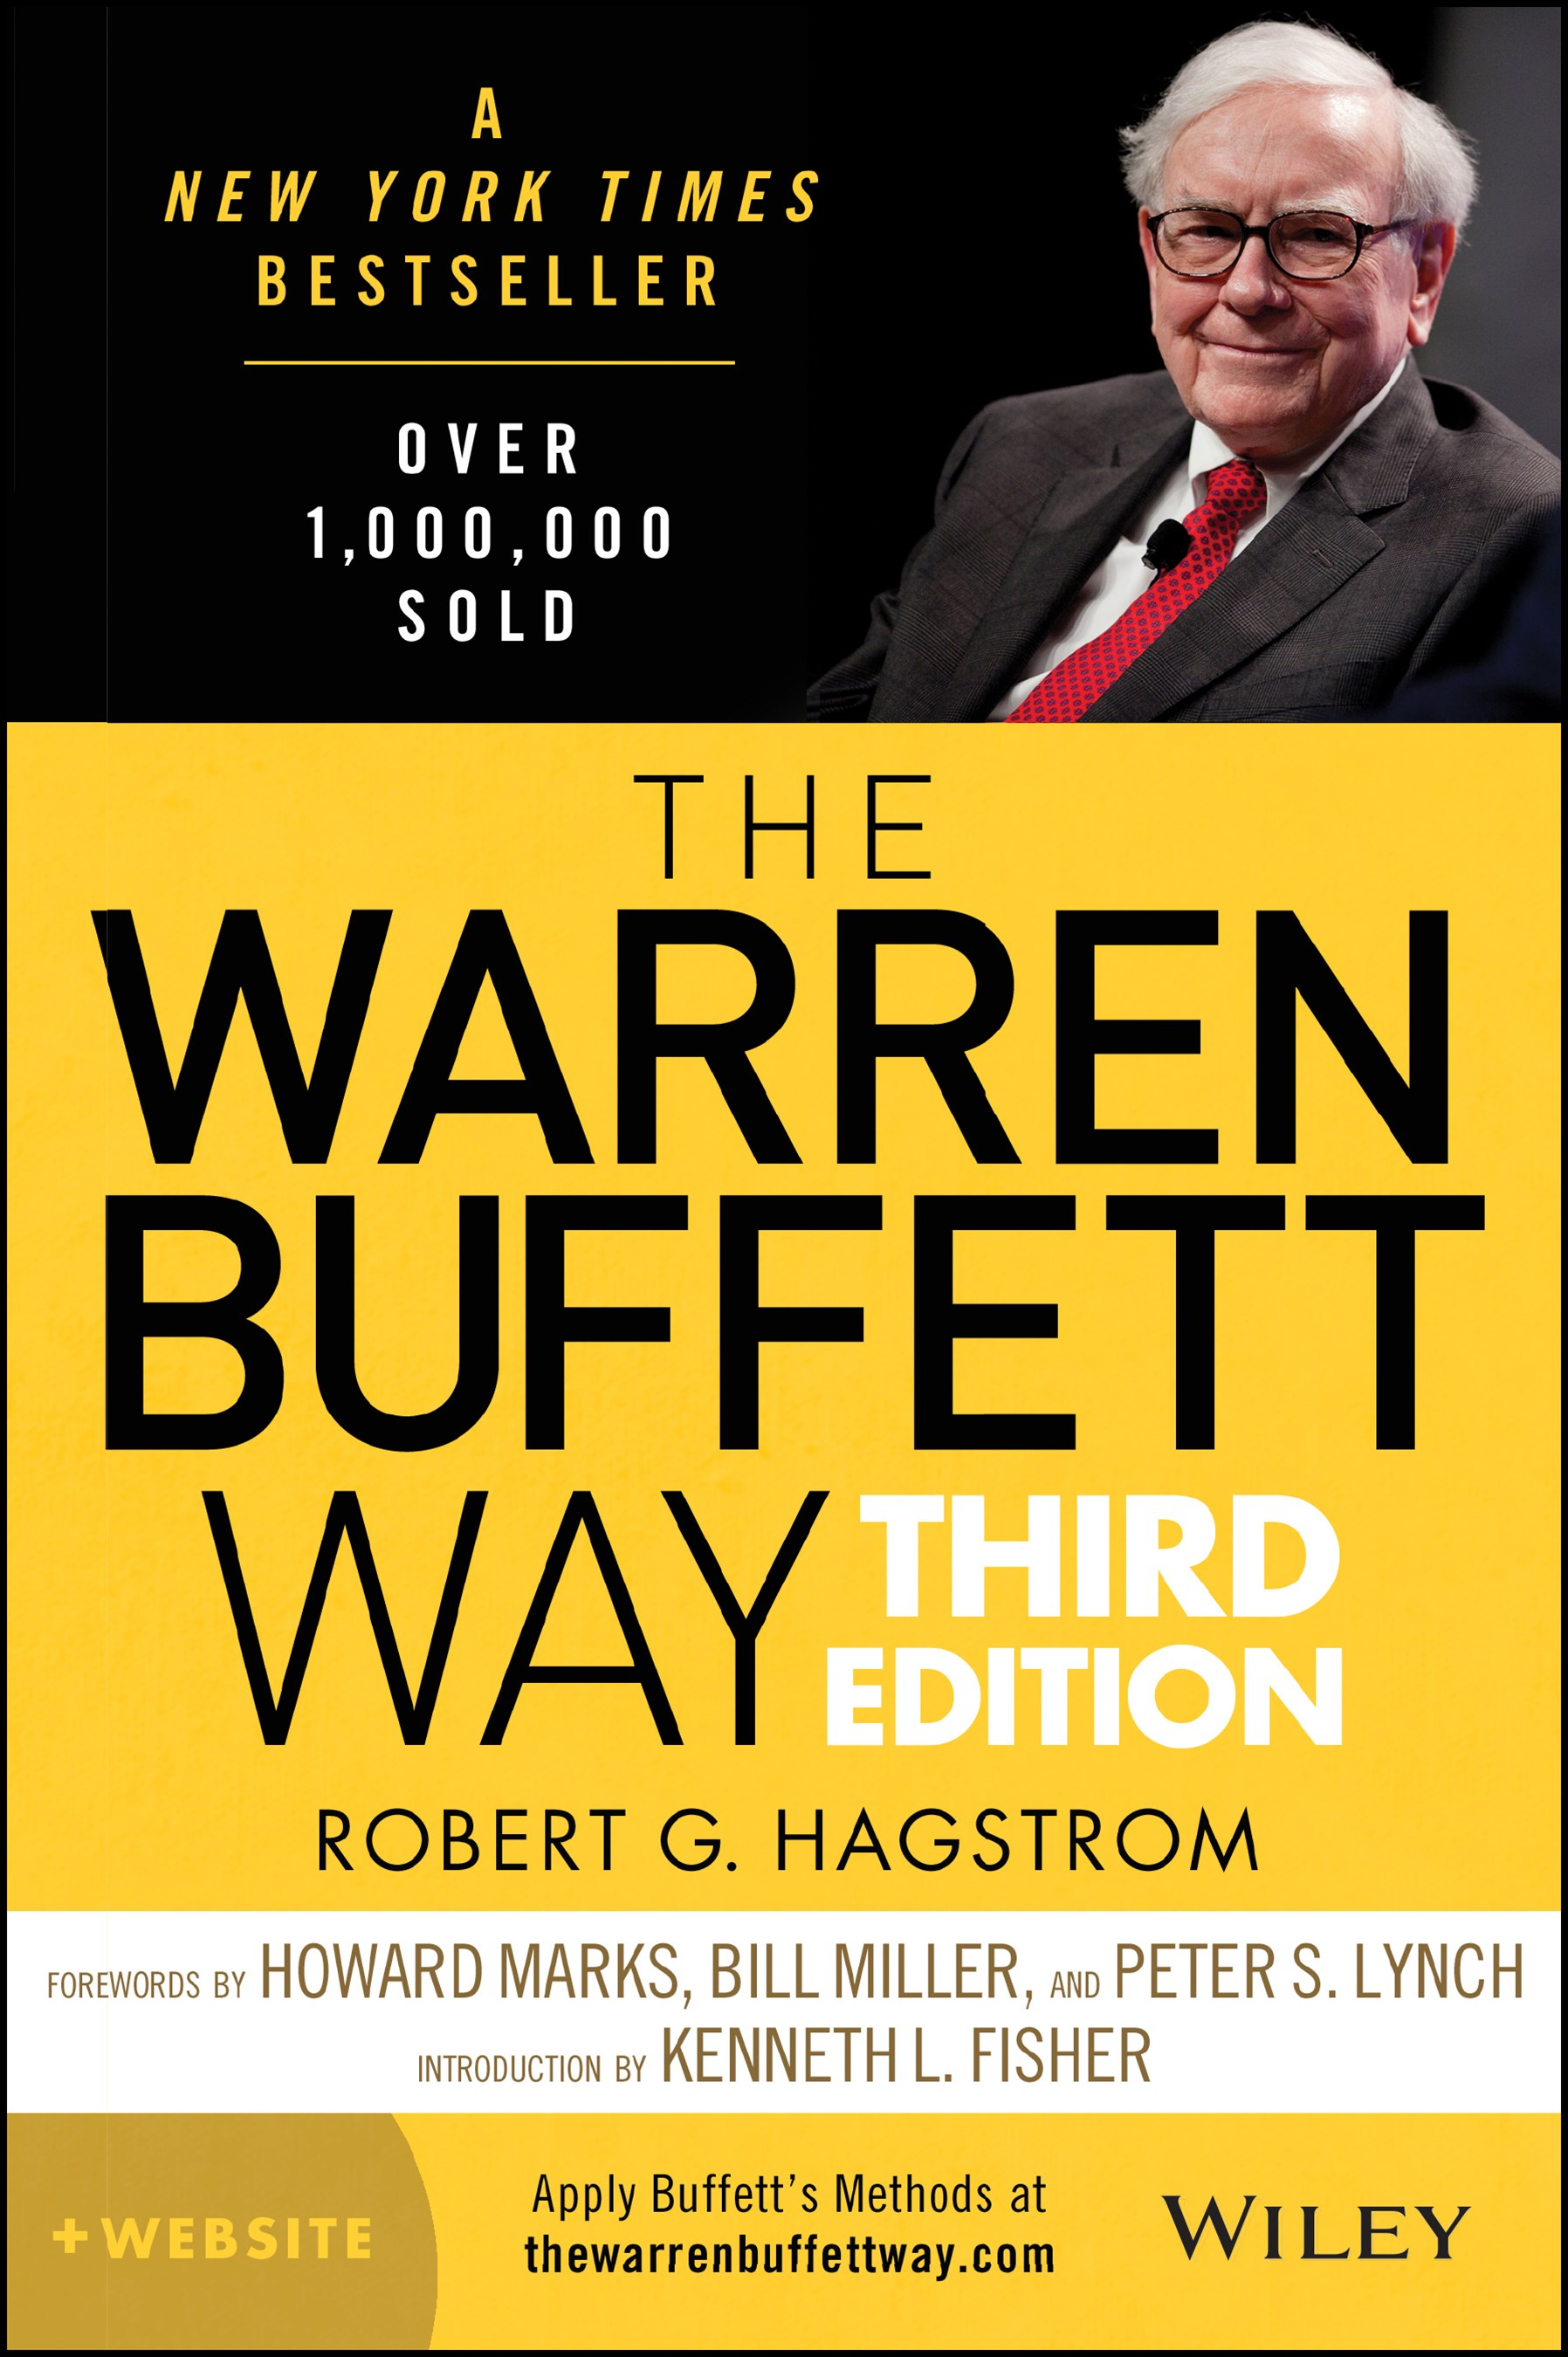 The Warren Buffett Way, Third Edition